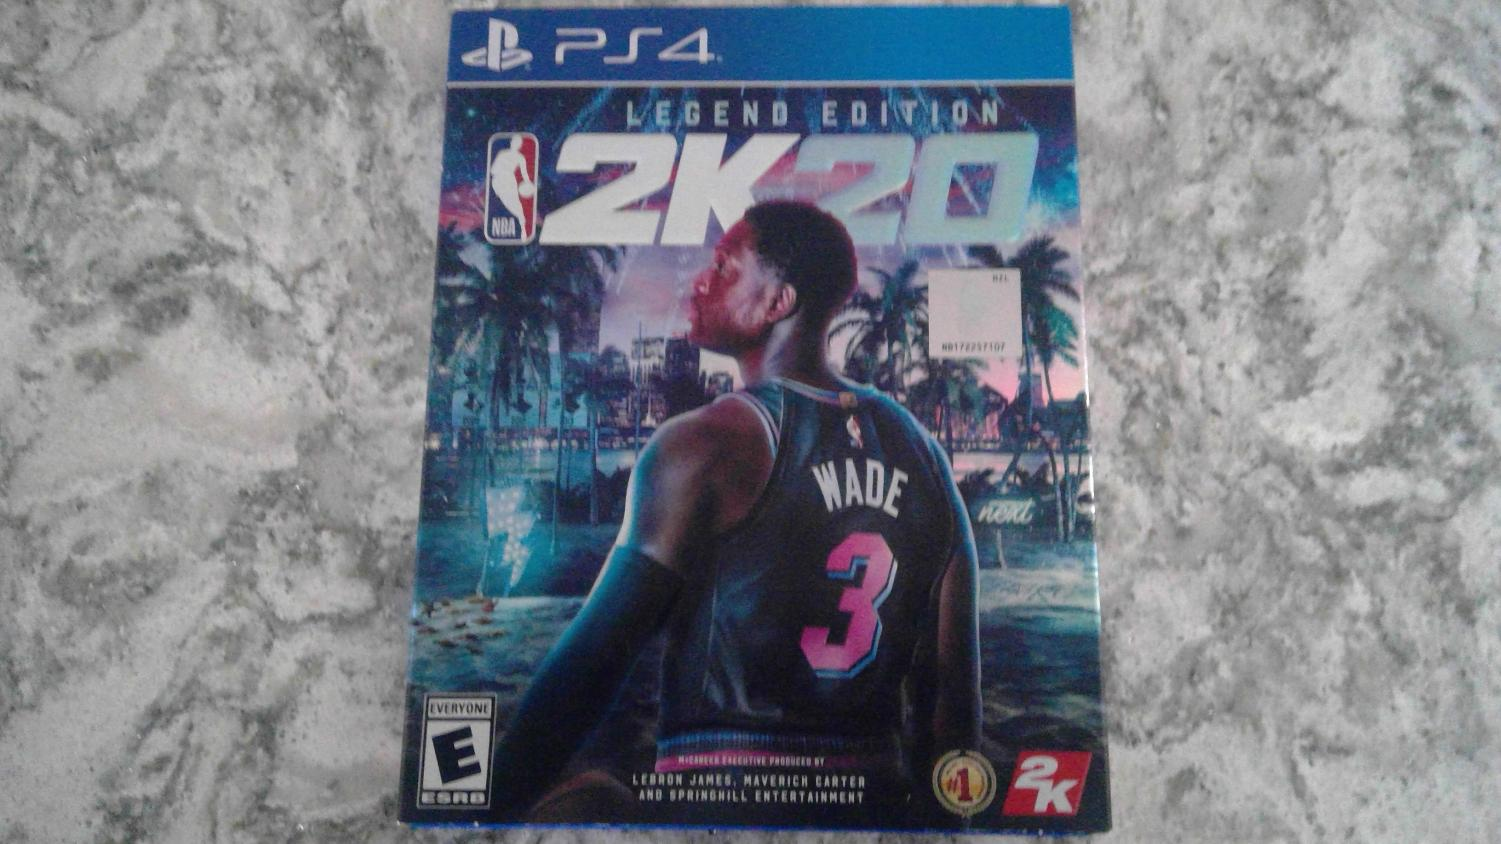 Future Hall of Fame member, Dwayne Wade on the cover of the Legendary edition of NBA 2K20. Photo Credit: Noah Goulbourne